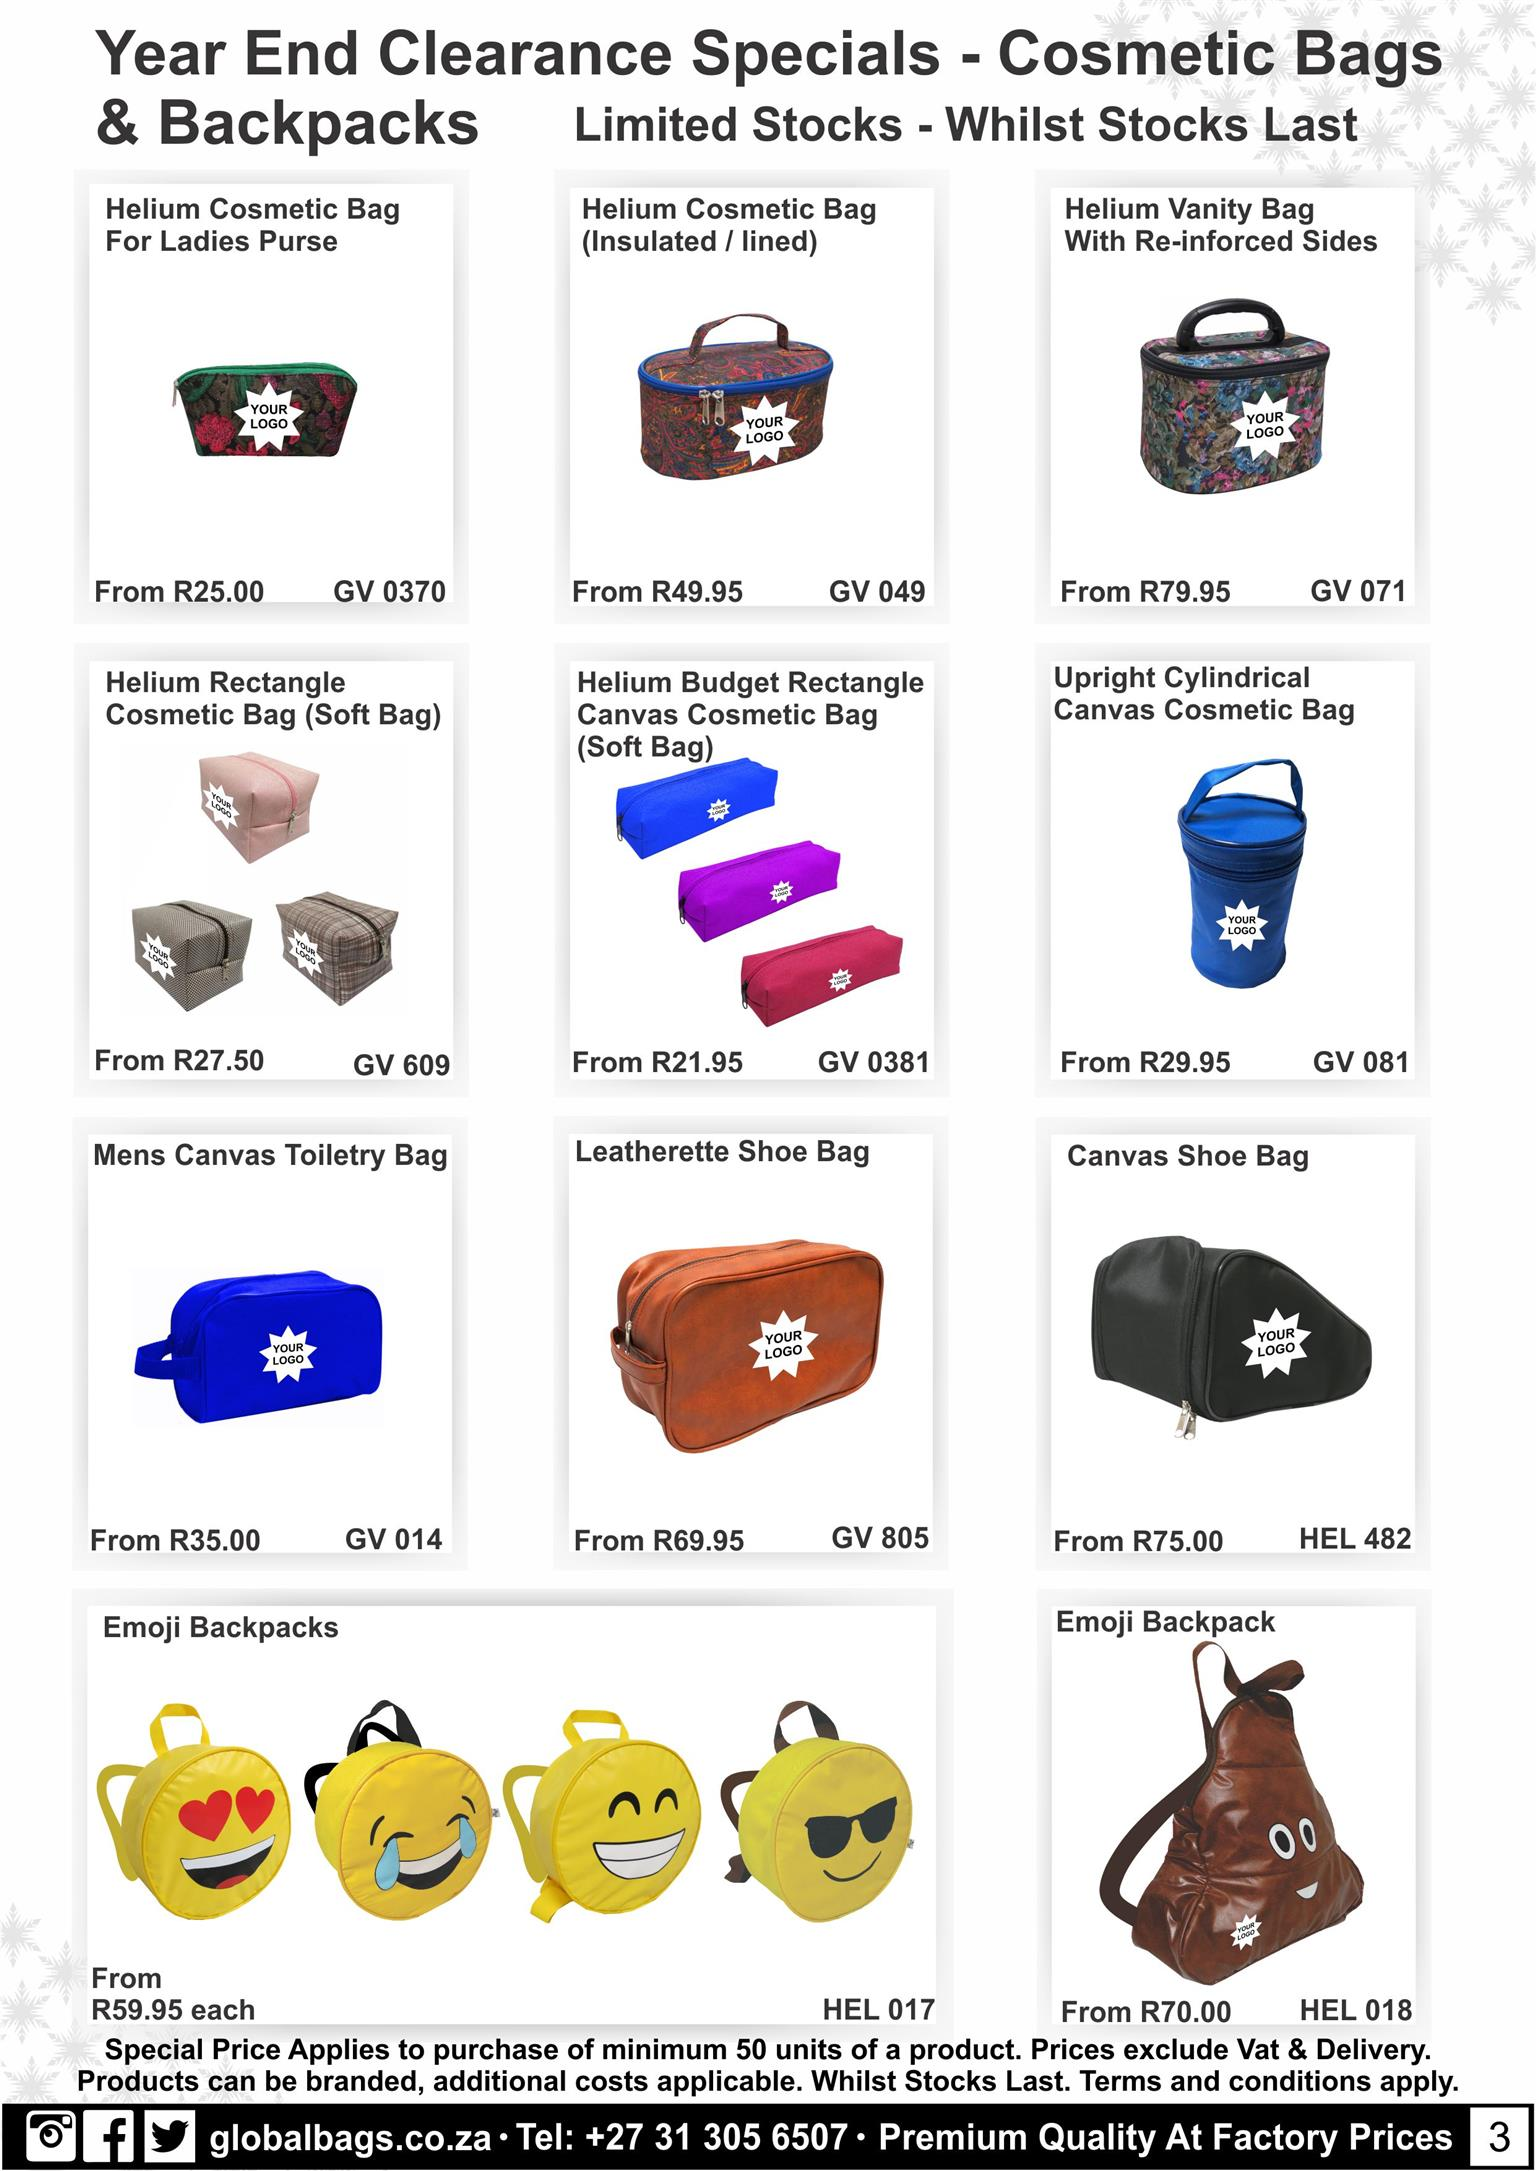 Year End Gifts & Back to School Specials